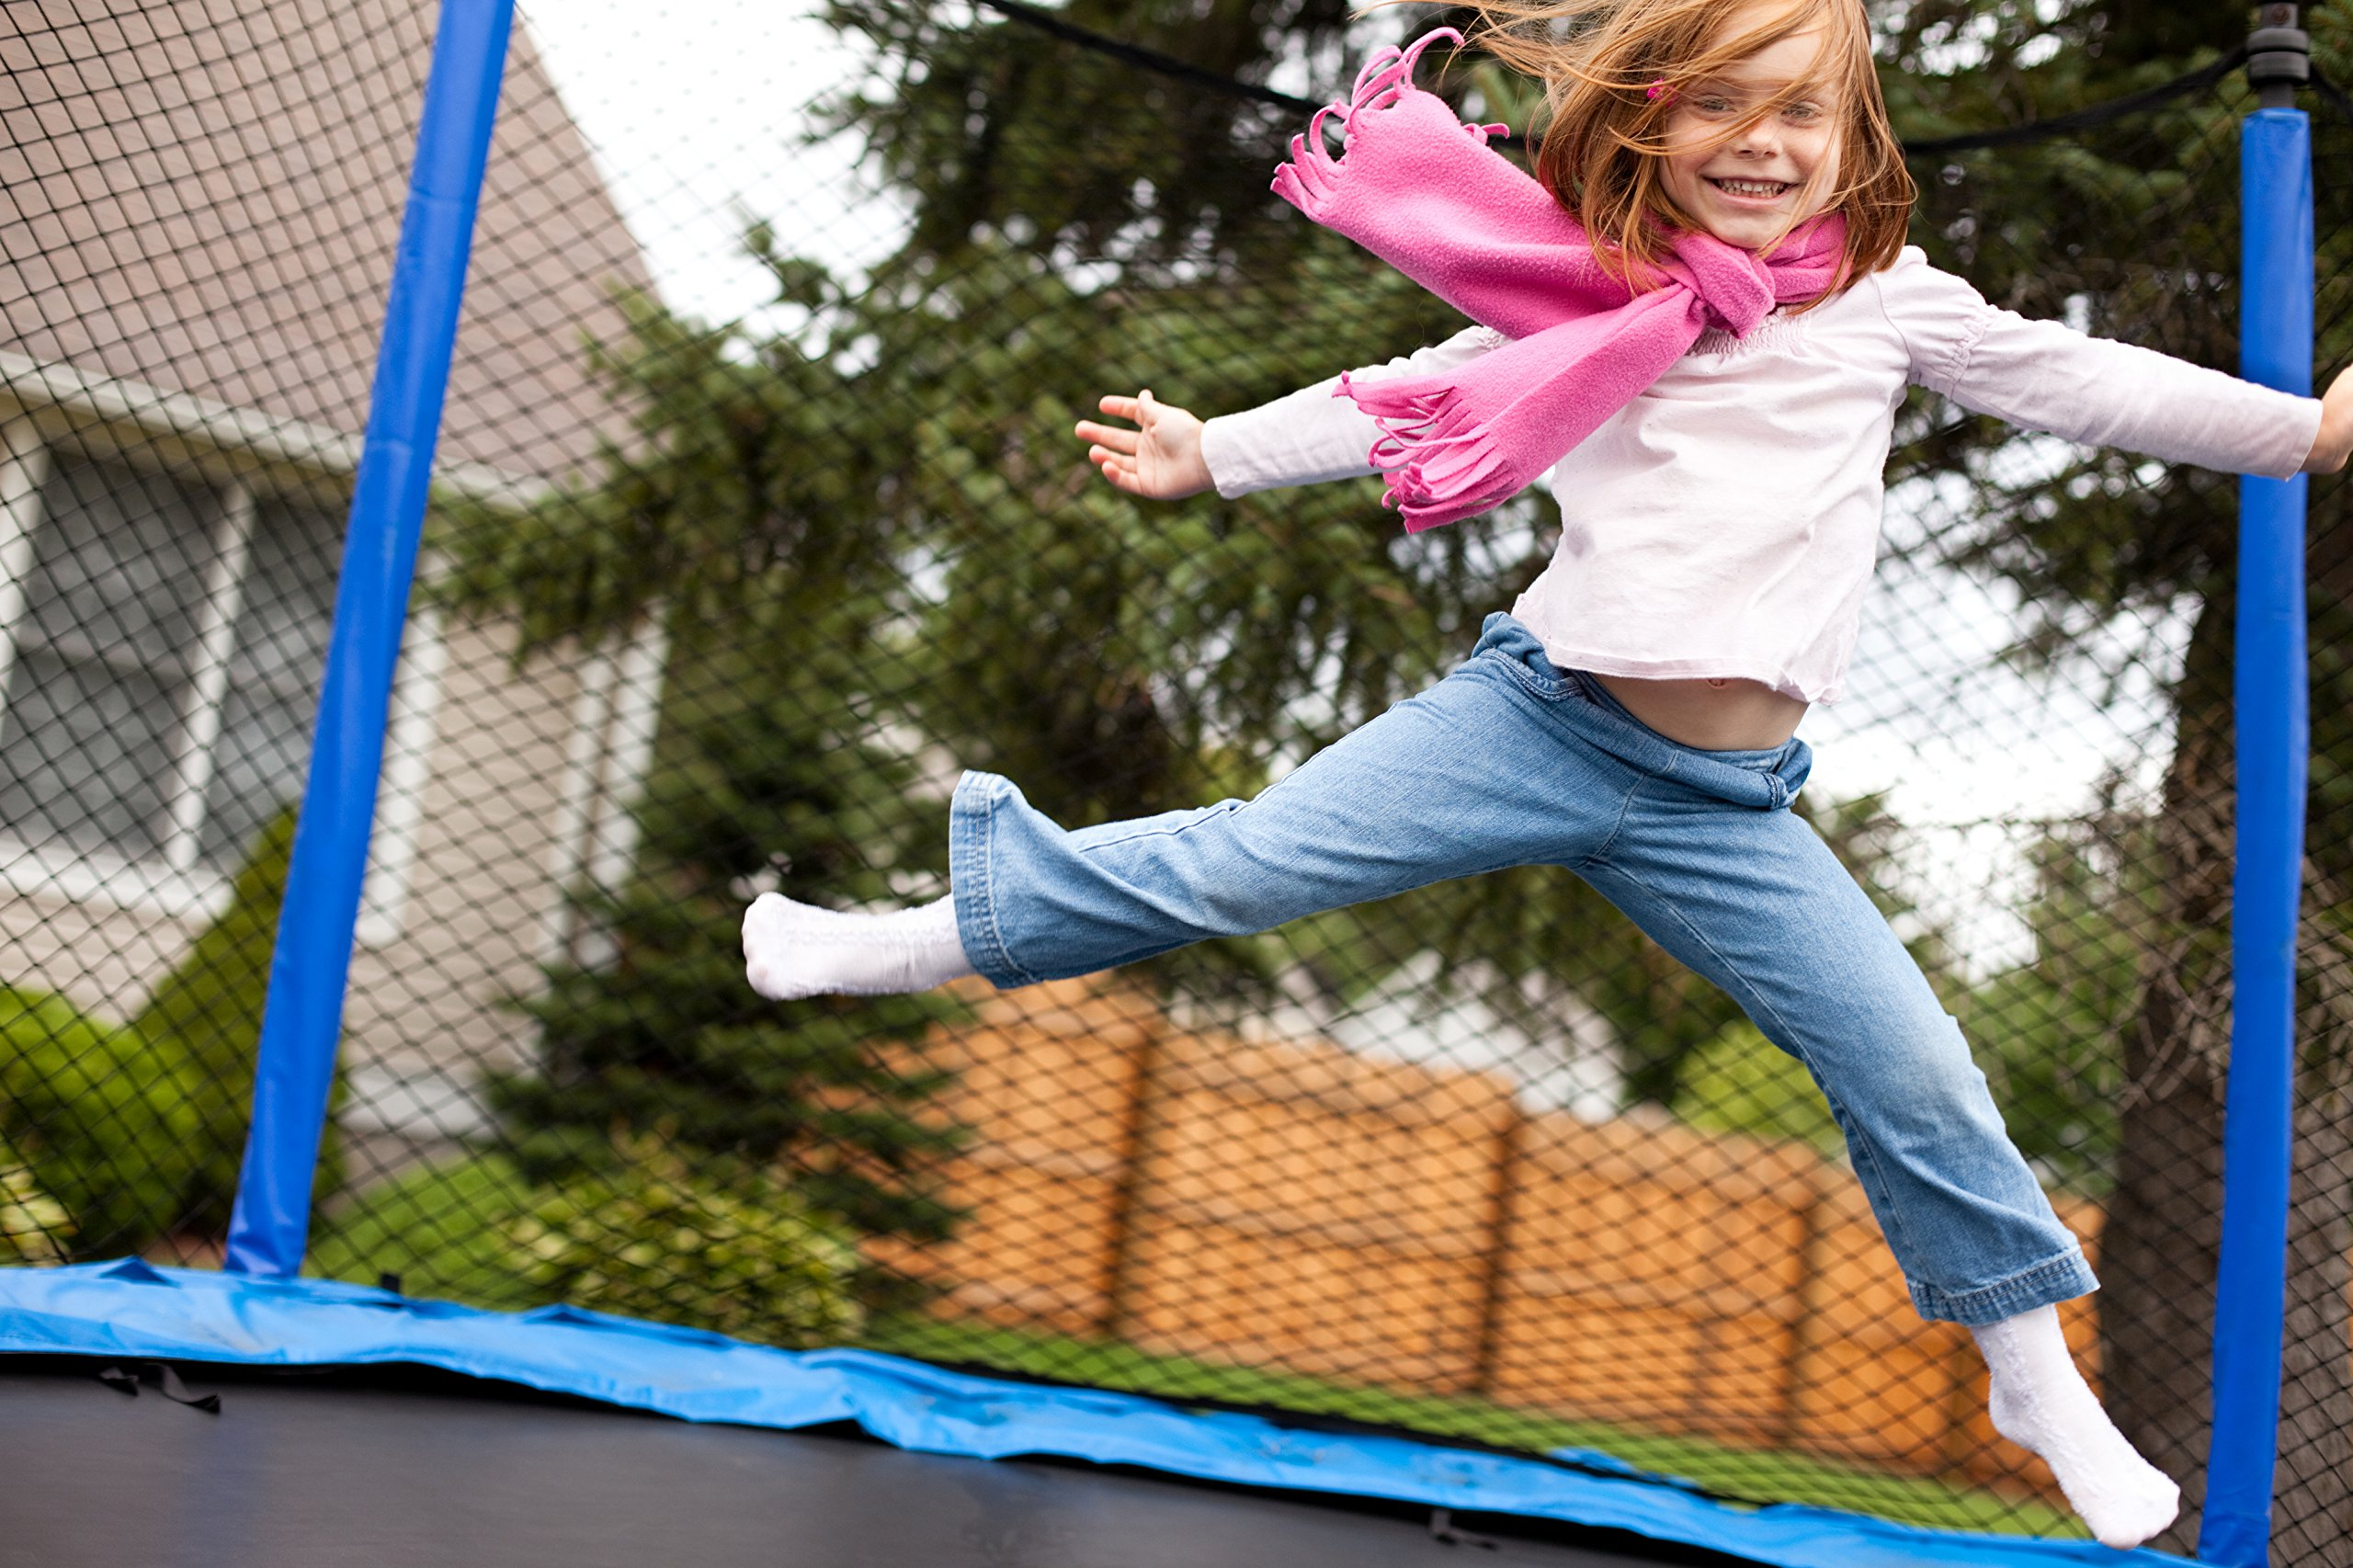 Nets For Trampoline Enclosures | By Trampoline Pro | Select Your Pole Type | Select Your Size, Shape, and Number of Poles | NETS ONLY (Arched Poles (Sleeves), 15ft Frame - 3 Arches) by Trampoline Pro